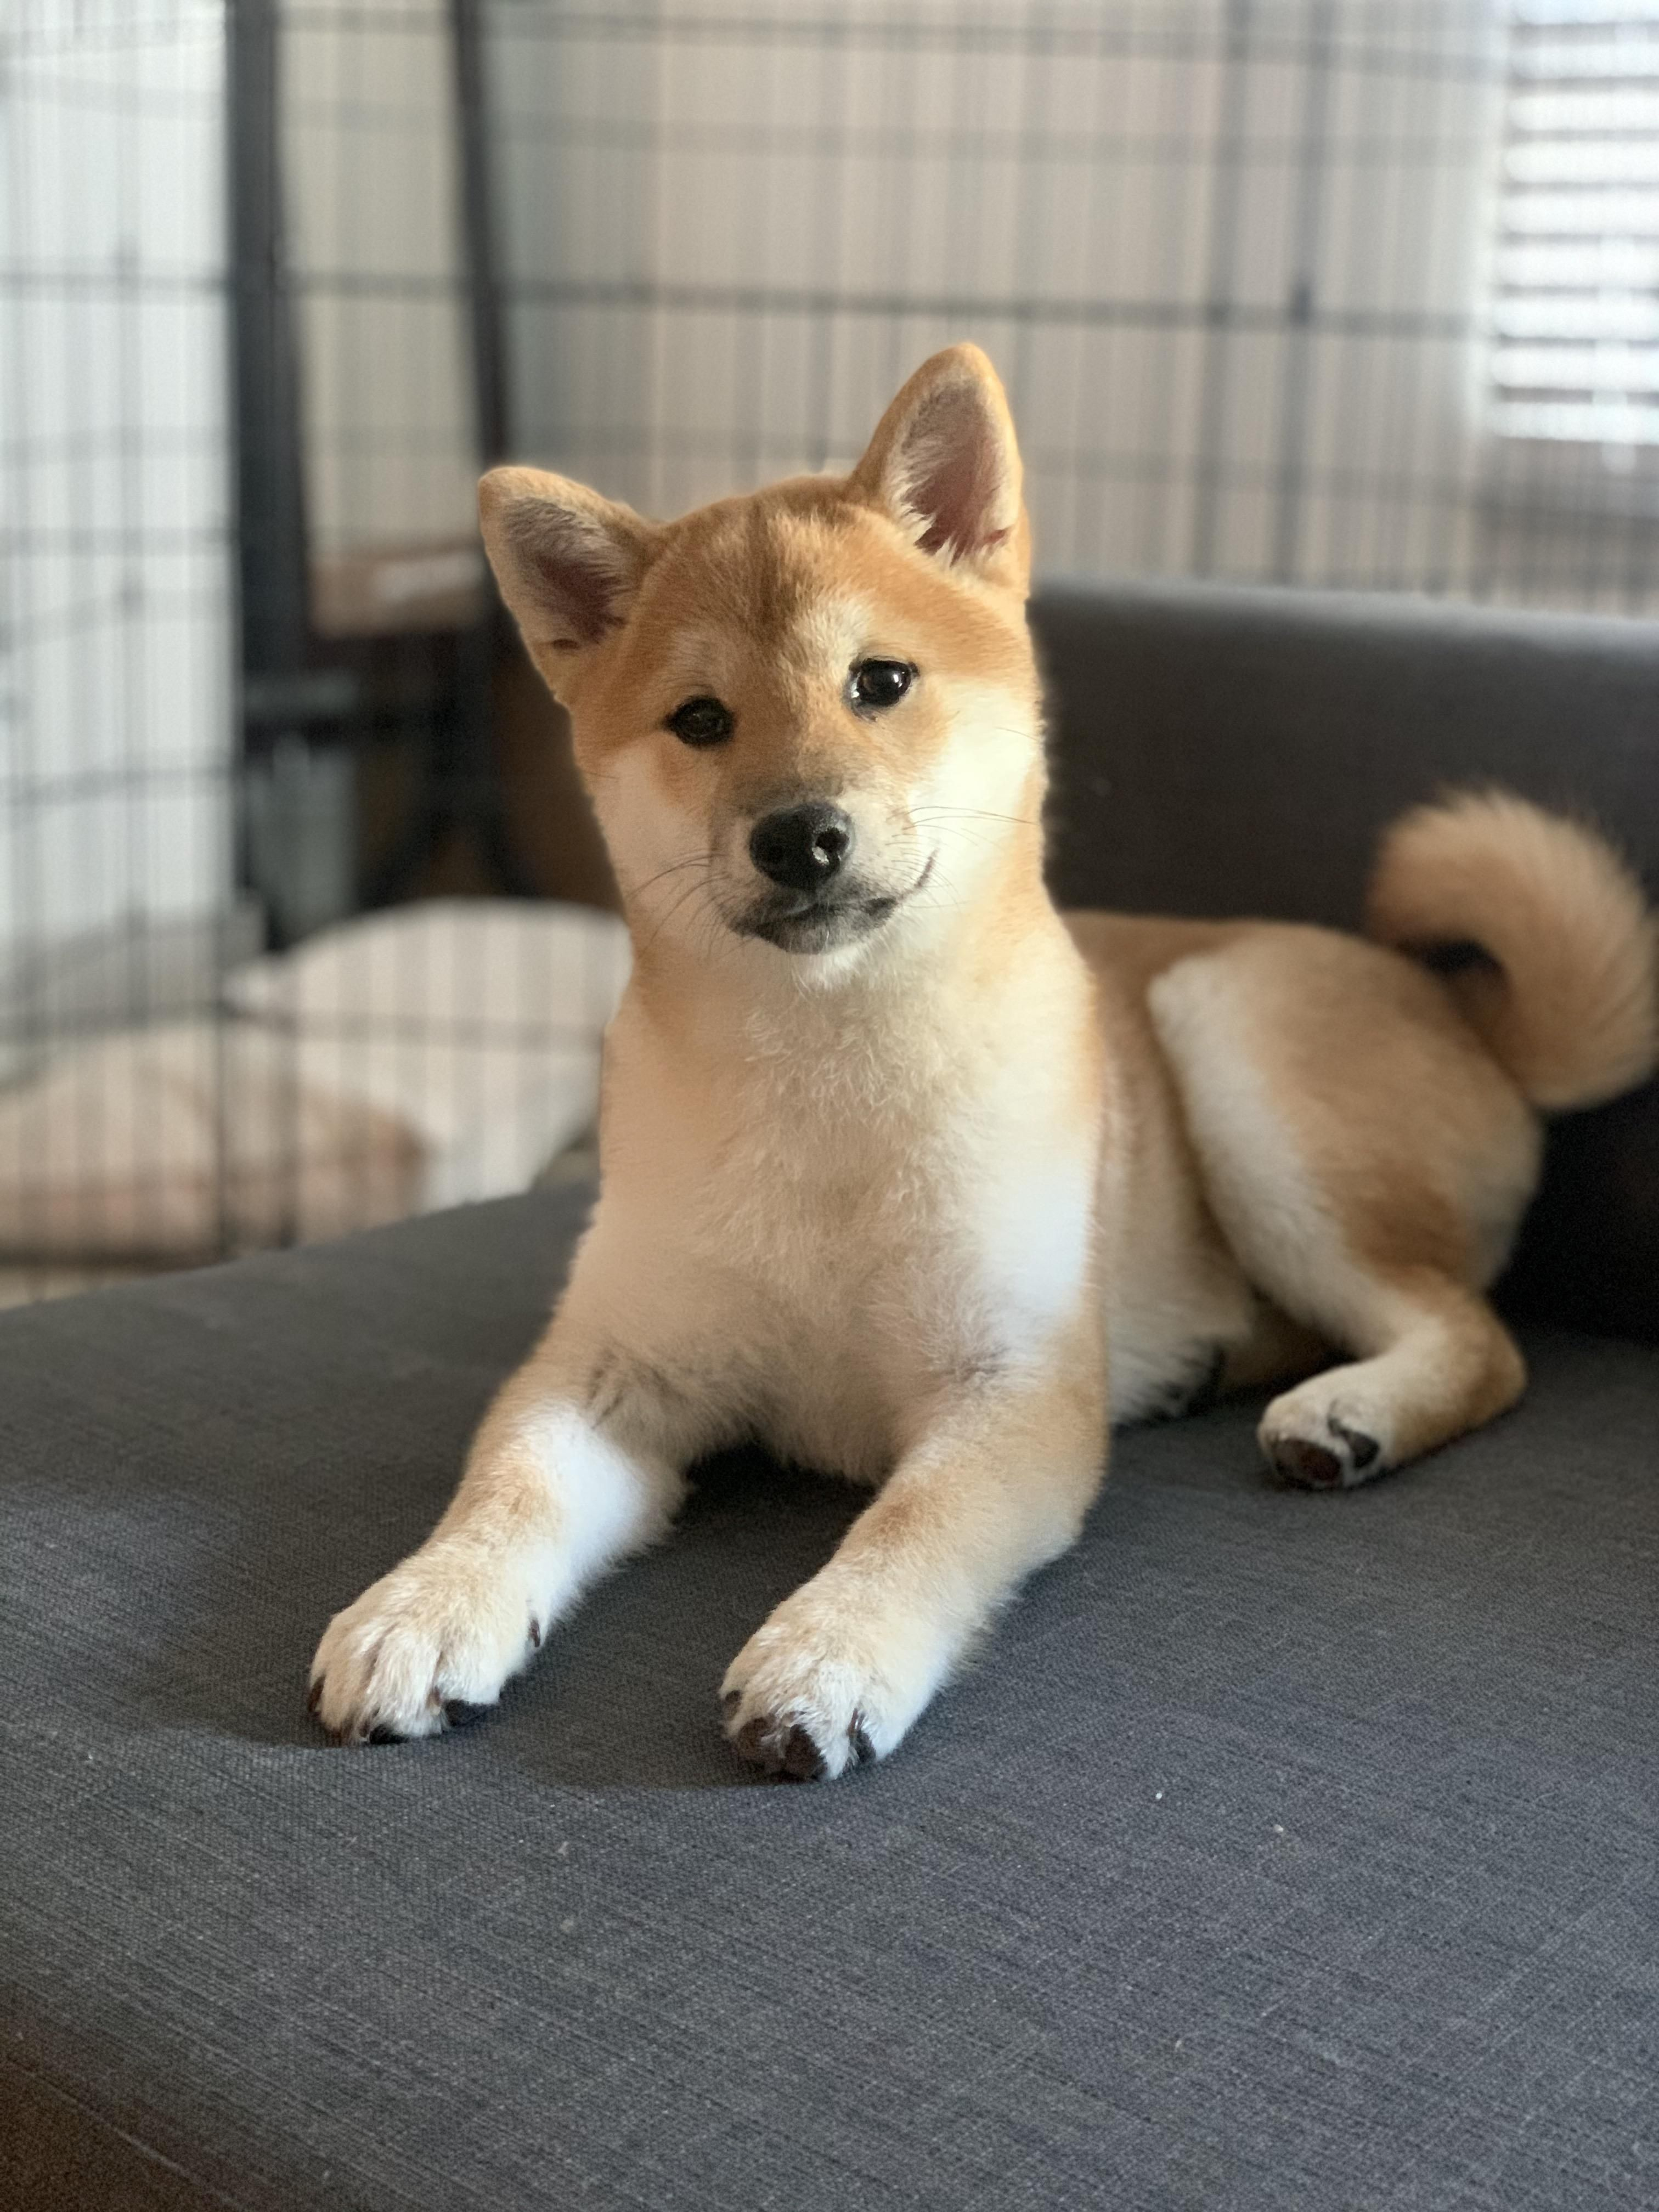 Don T Think My Earlier Post Posted But Here S Pepper At 14 Weeks Shibainu We 3 Shiba Inus In 2020 Shiba Inu Shiba Inu Puppy Cutest Dog Ever